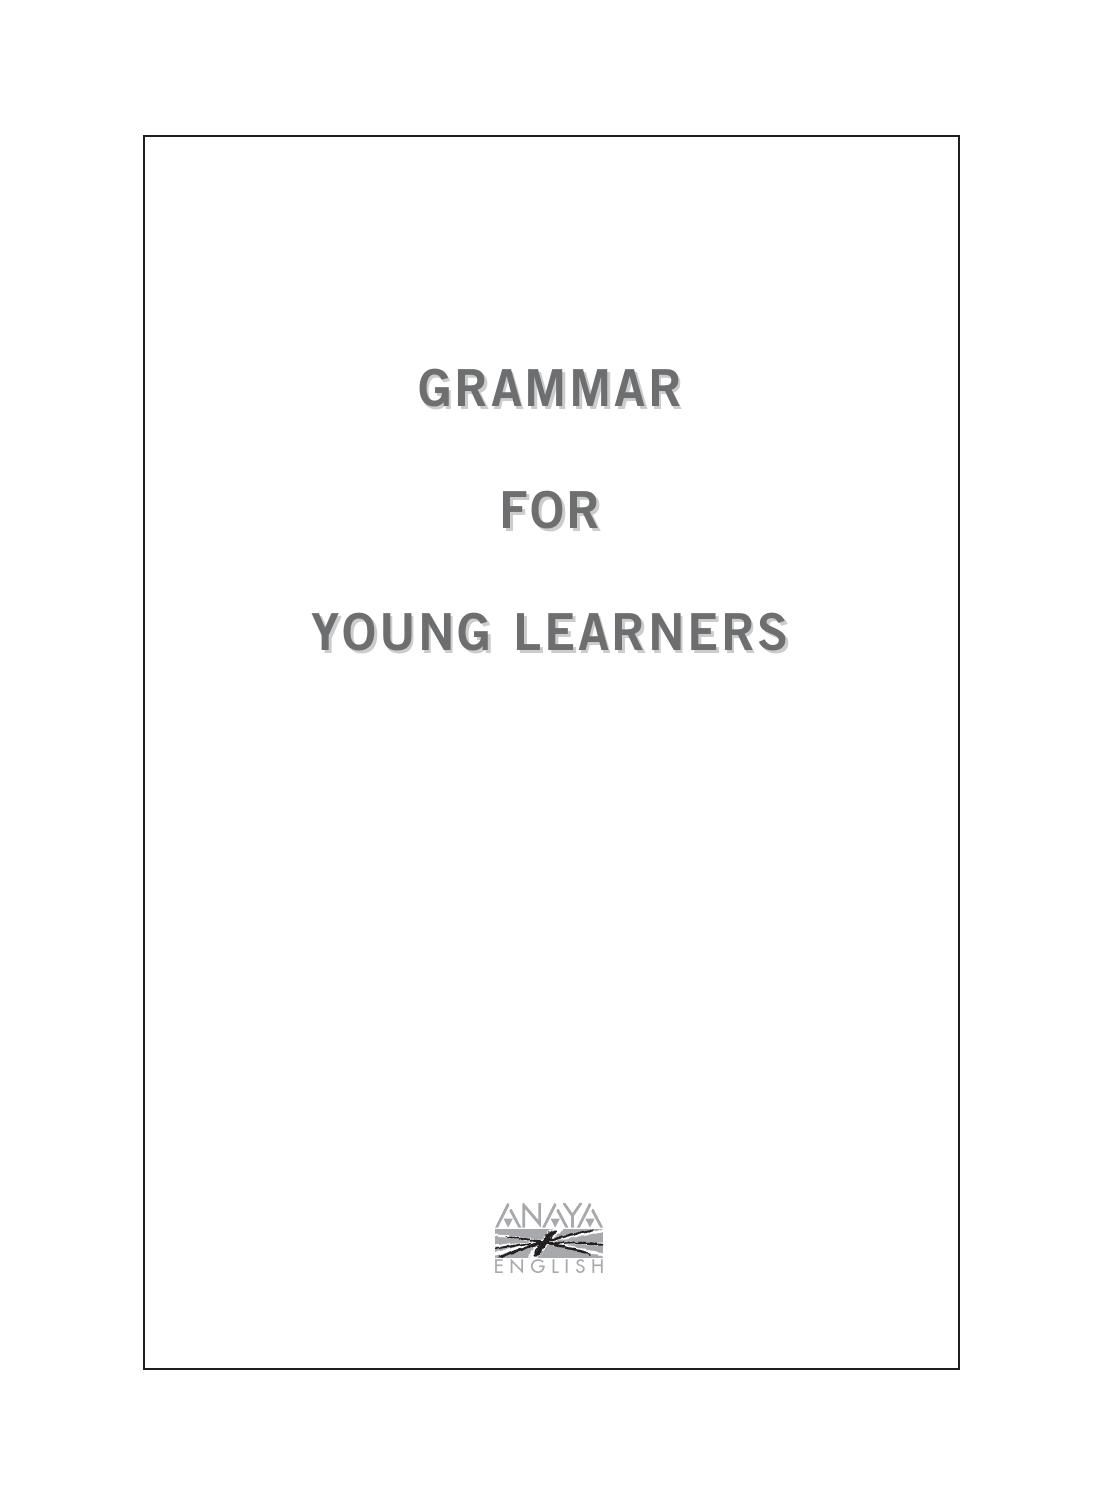 Grammar For Young Learners Grammar Learners Digital Publishing